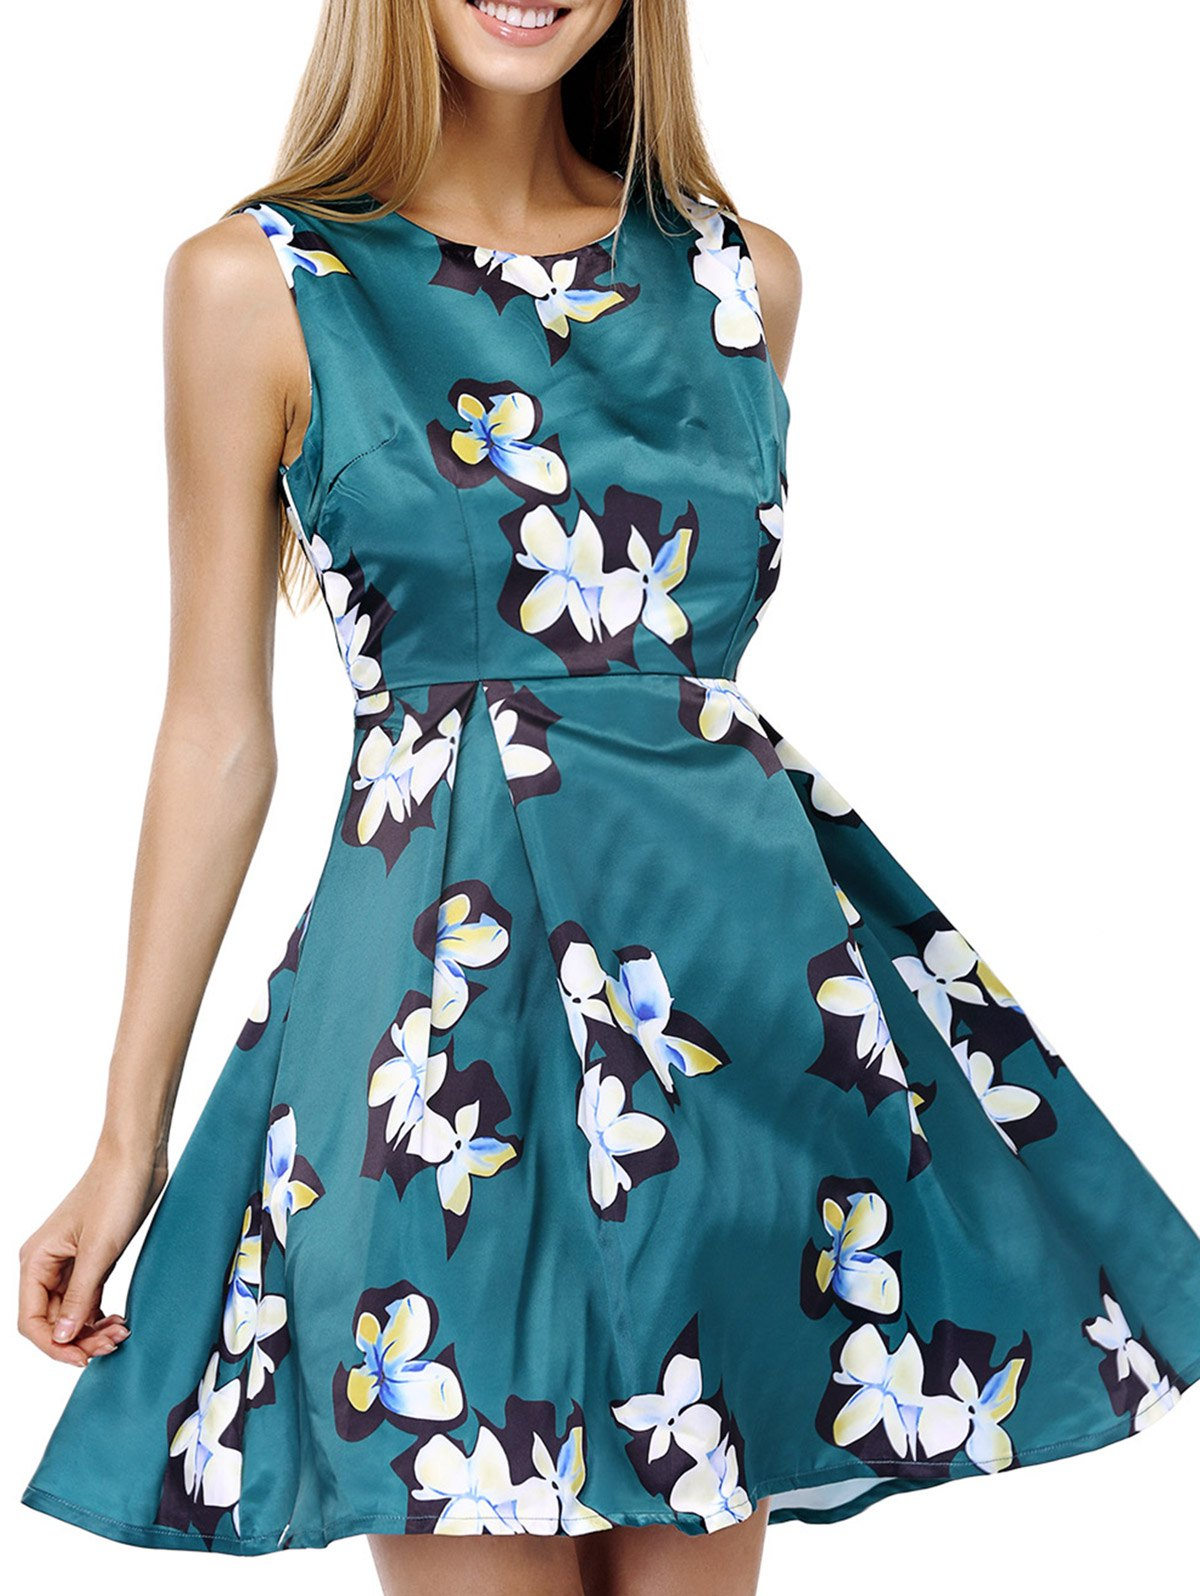 Elegant Scoop Neck Sleeveless Floral Print Fit and Flare Dress For Women